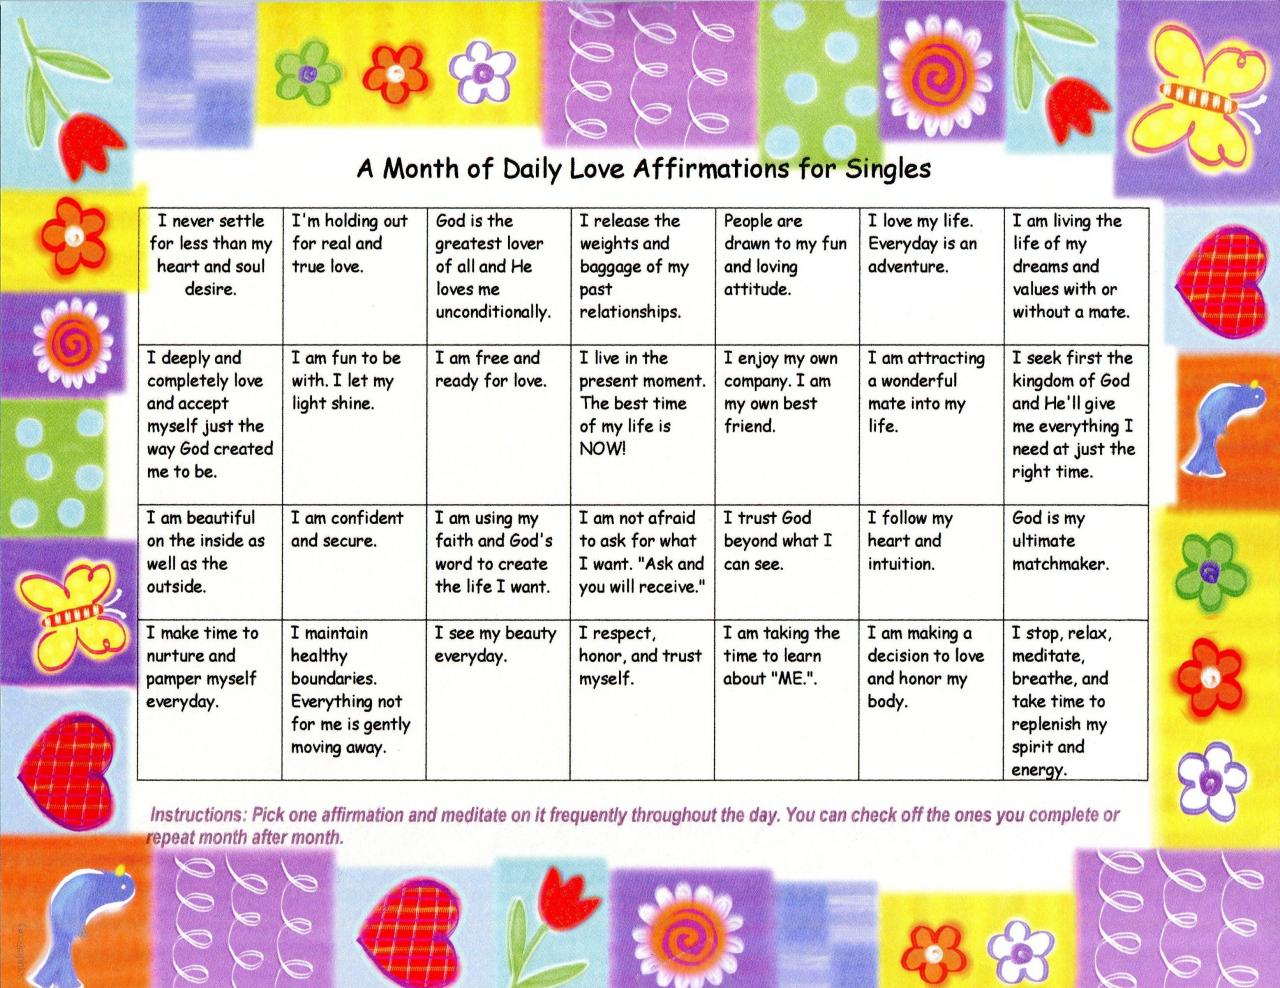 Calendars Of Daily Christian Love Affirmations For Couples And Singles